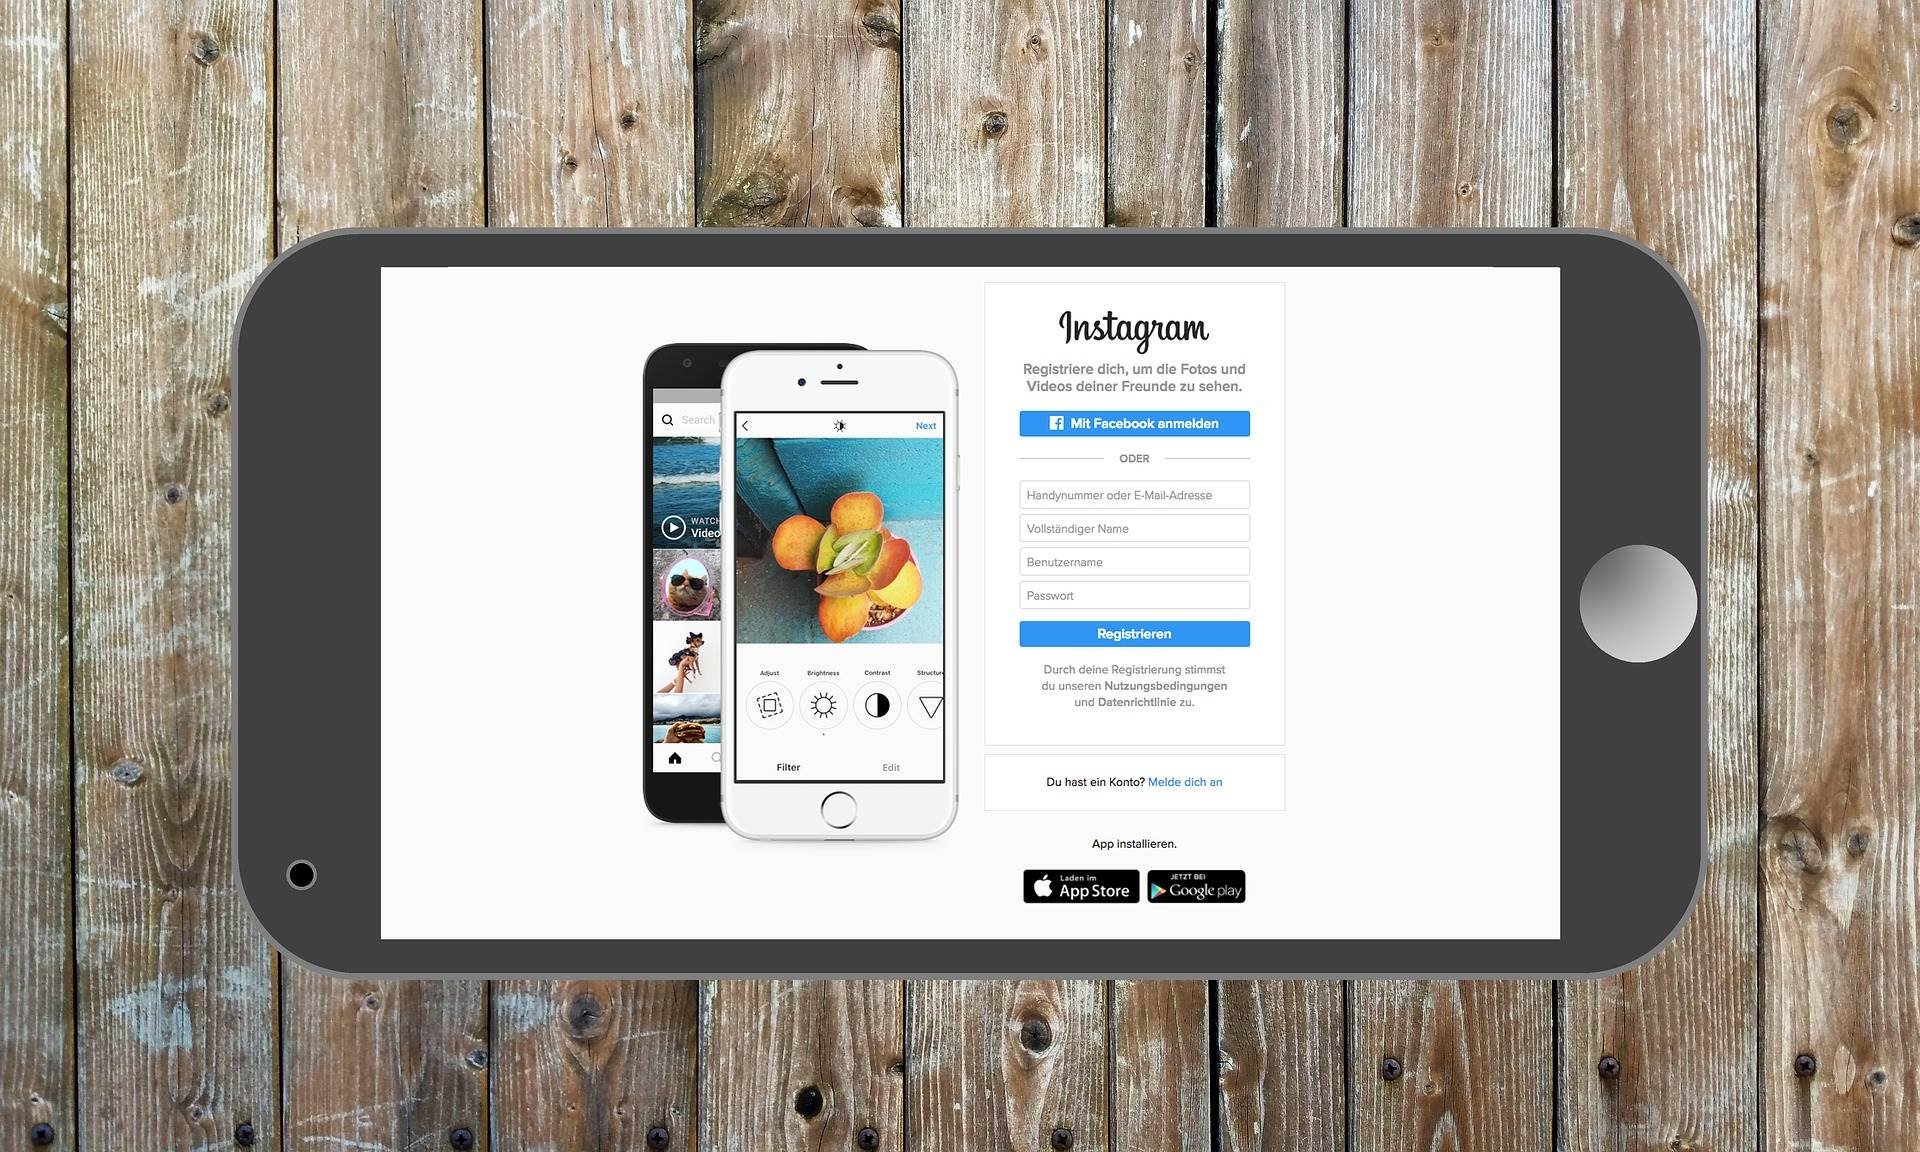 Should paid followers for Instagram be relatively inexpensive or hilariously cheap?